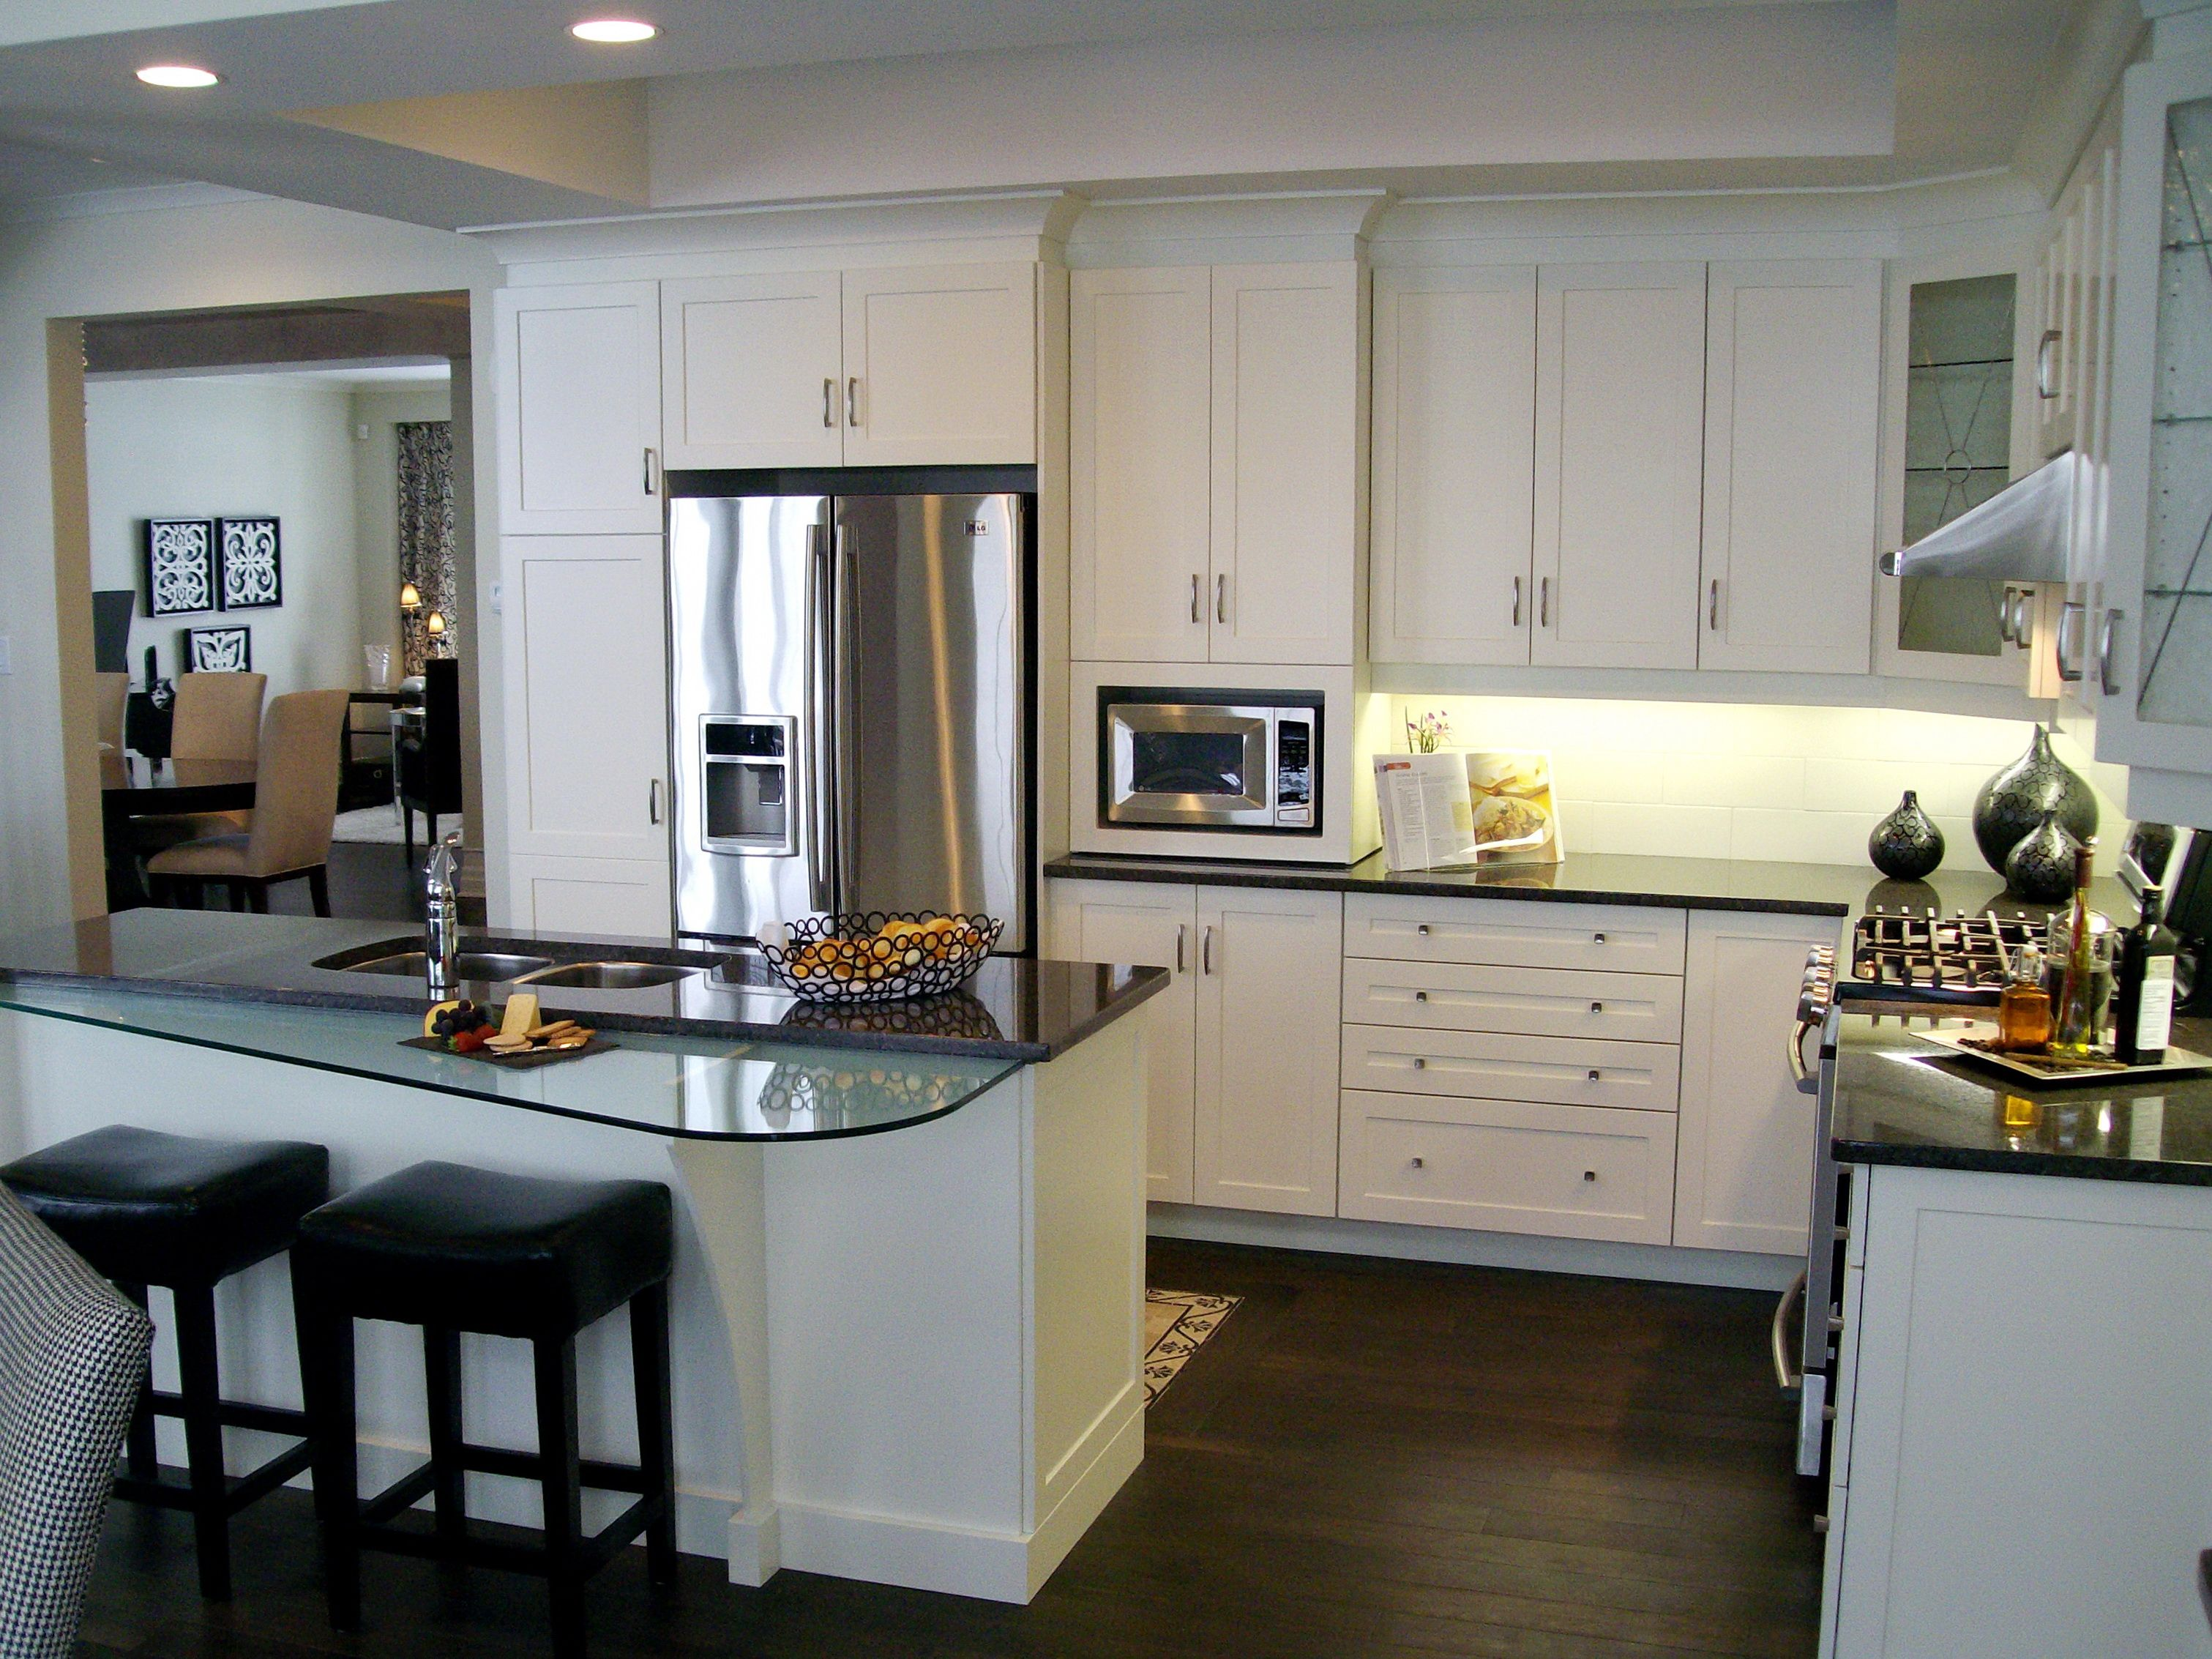 White Lacquer Shaker Cabinets With Antique Brown Granite